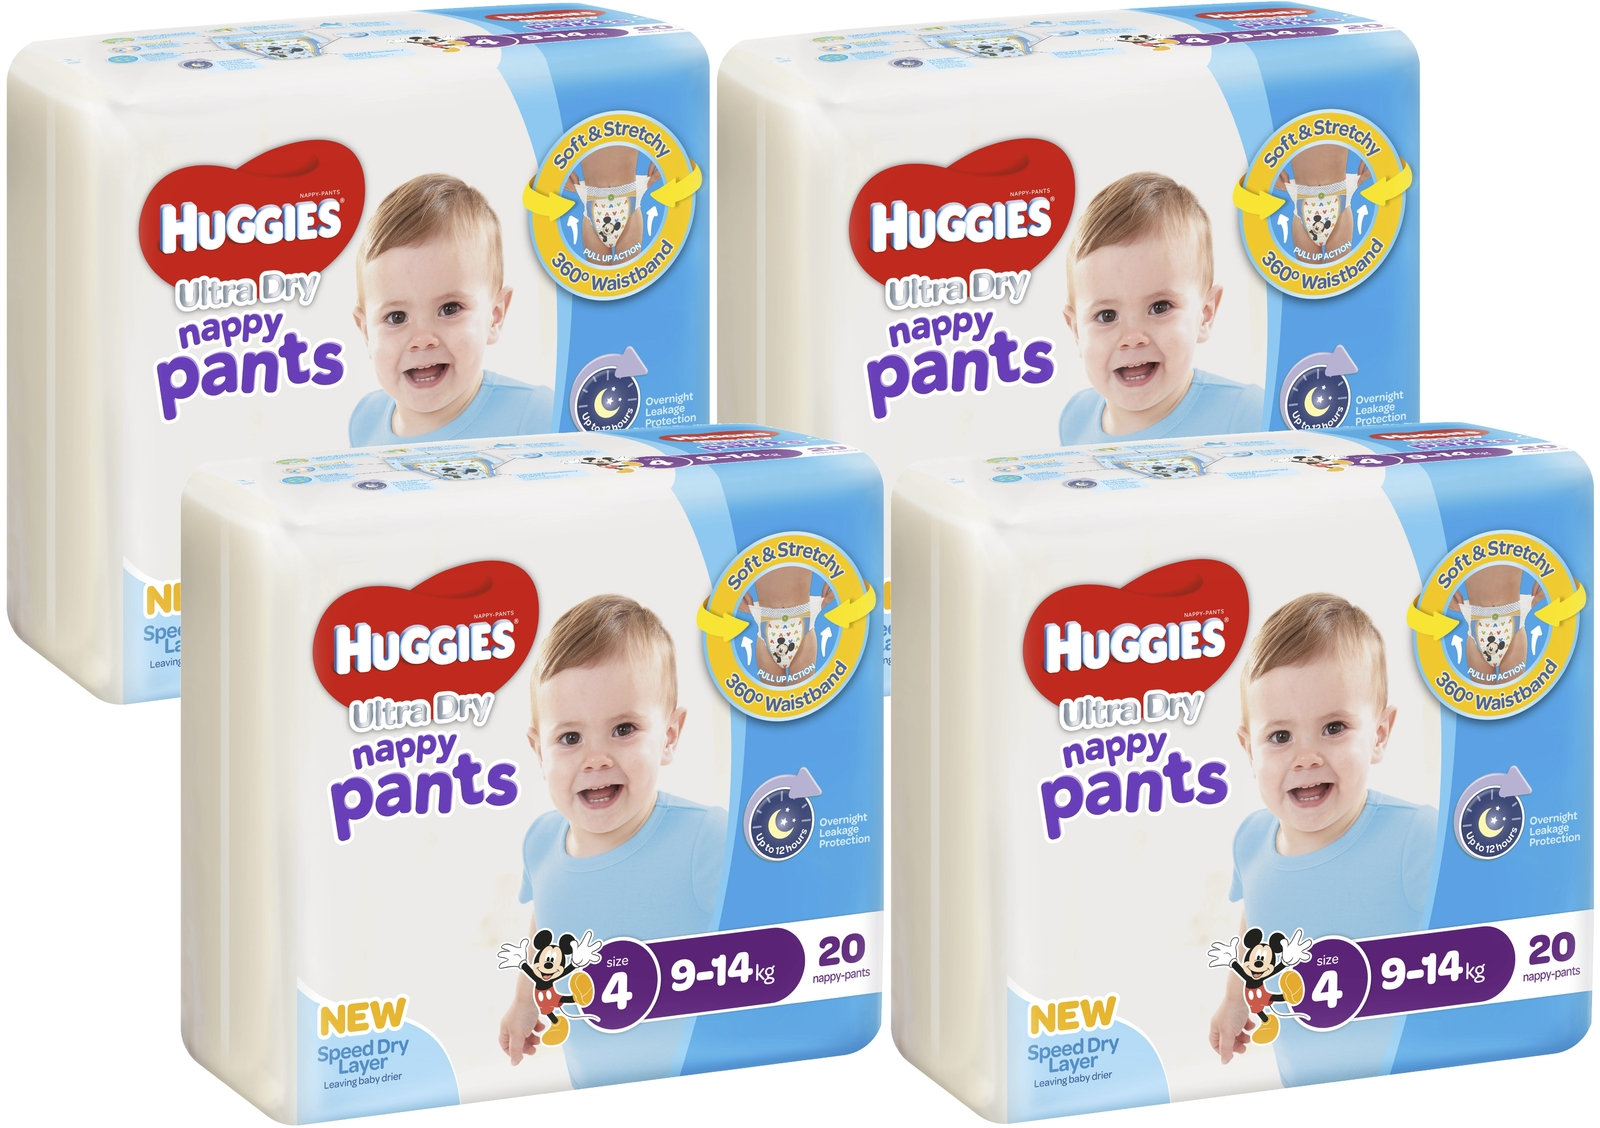 Huggies Ultra Dry Nappy Pants Convenience Value Box - Size 4 Boy 9-14 kg (80) image